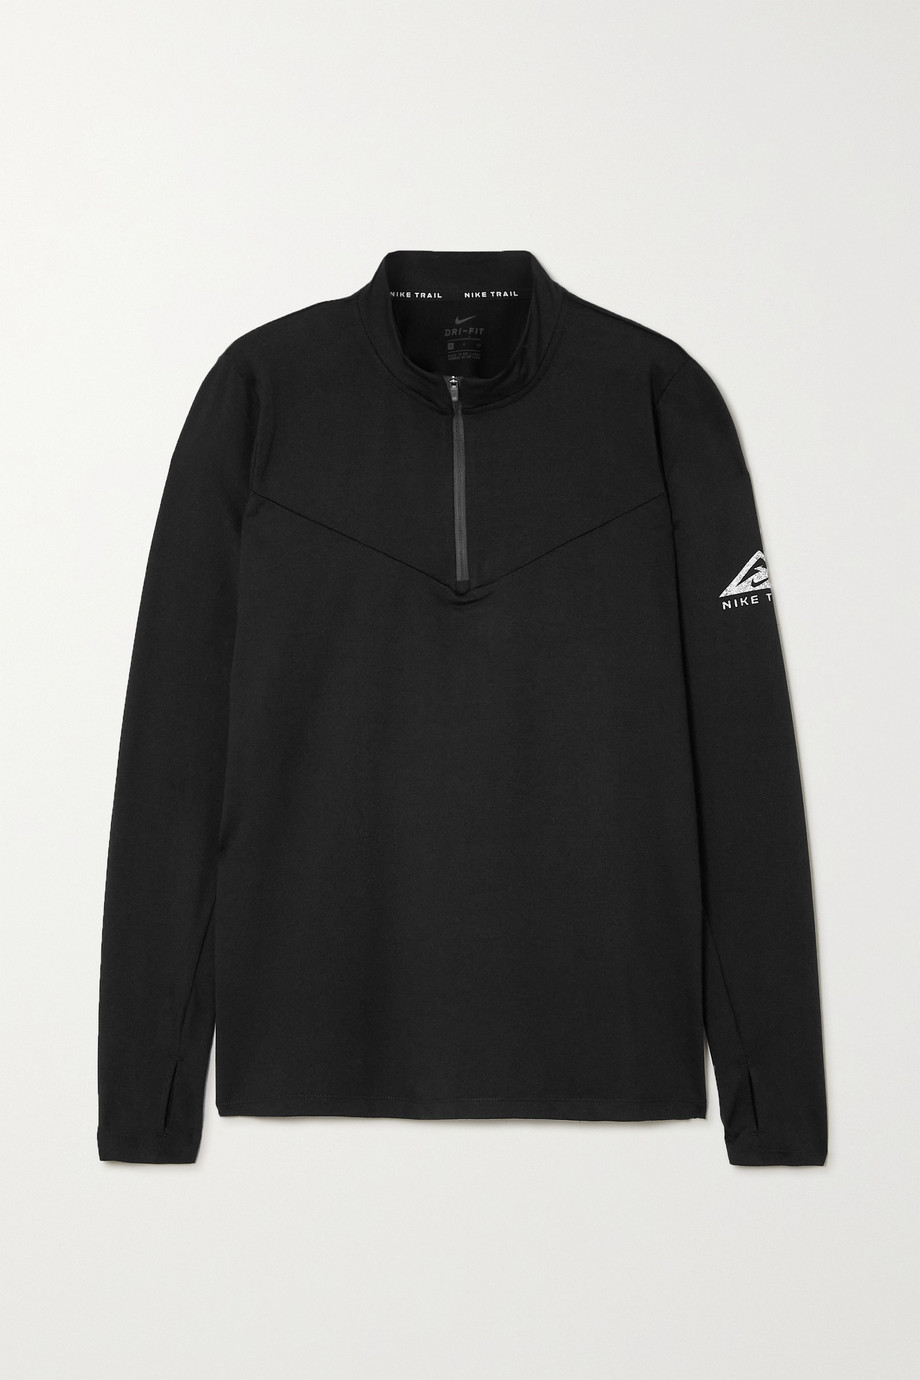 Nike Element Trail printed stretch-jersey top